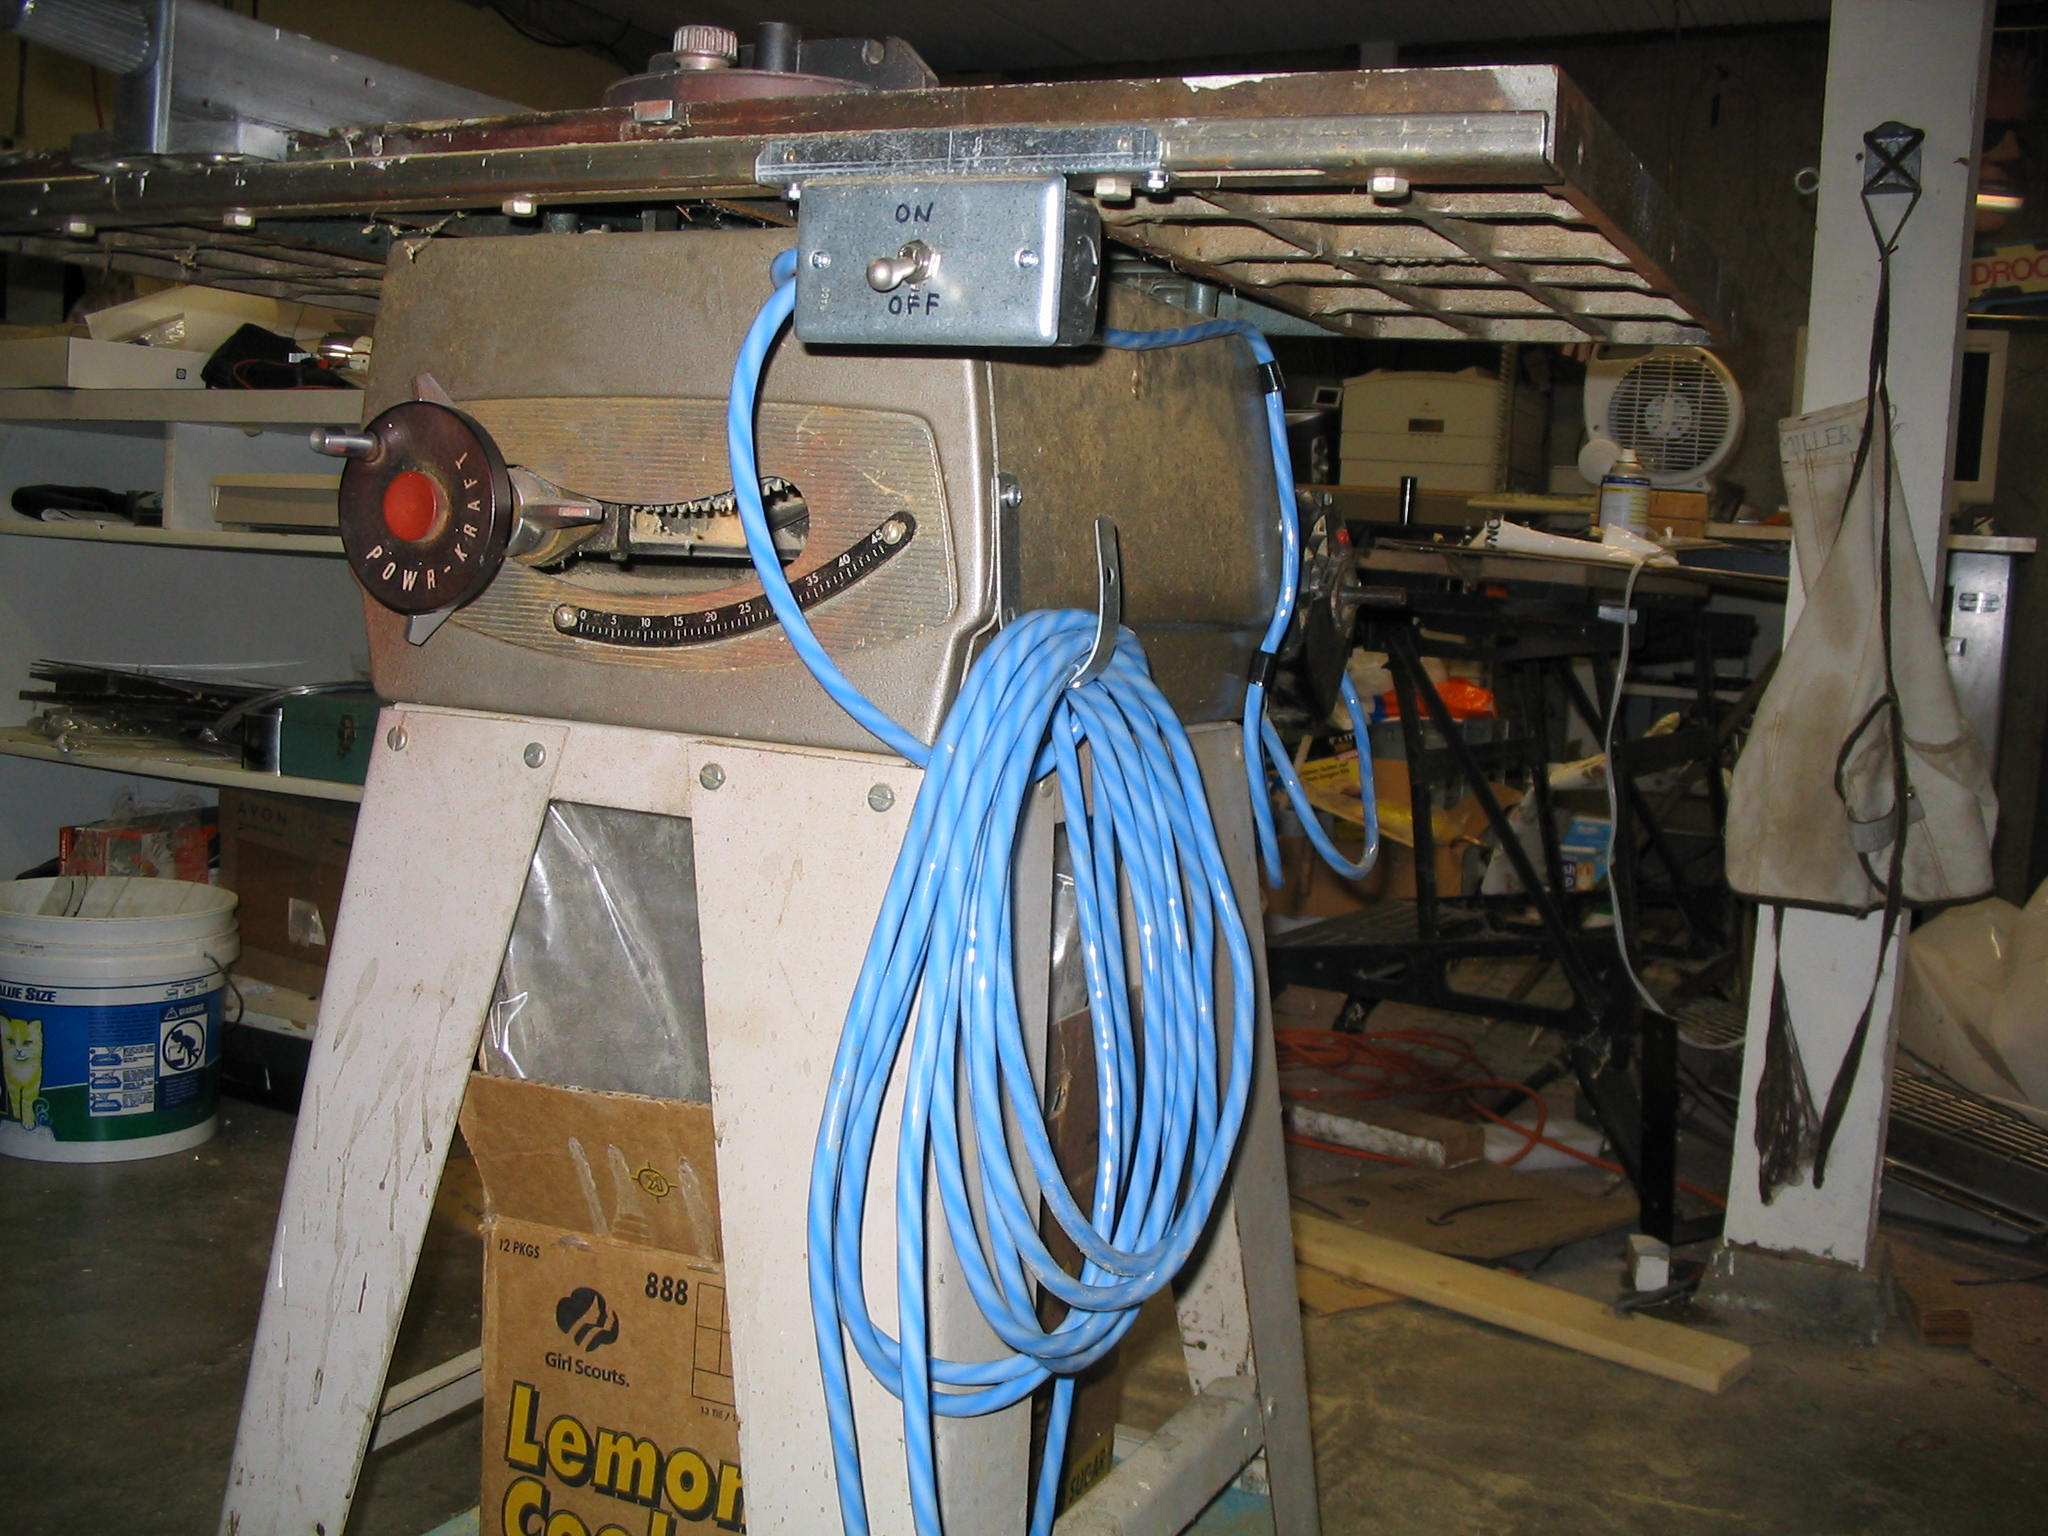 Tablesaw wiring repair bolis new switch and wiring keyboard keysfo